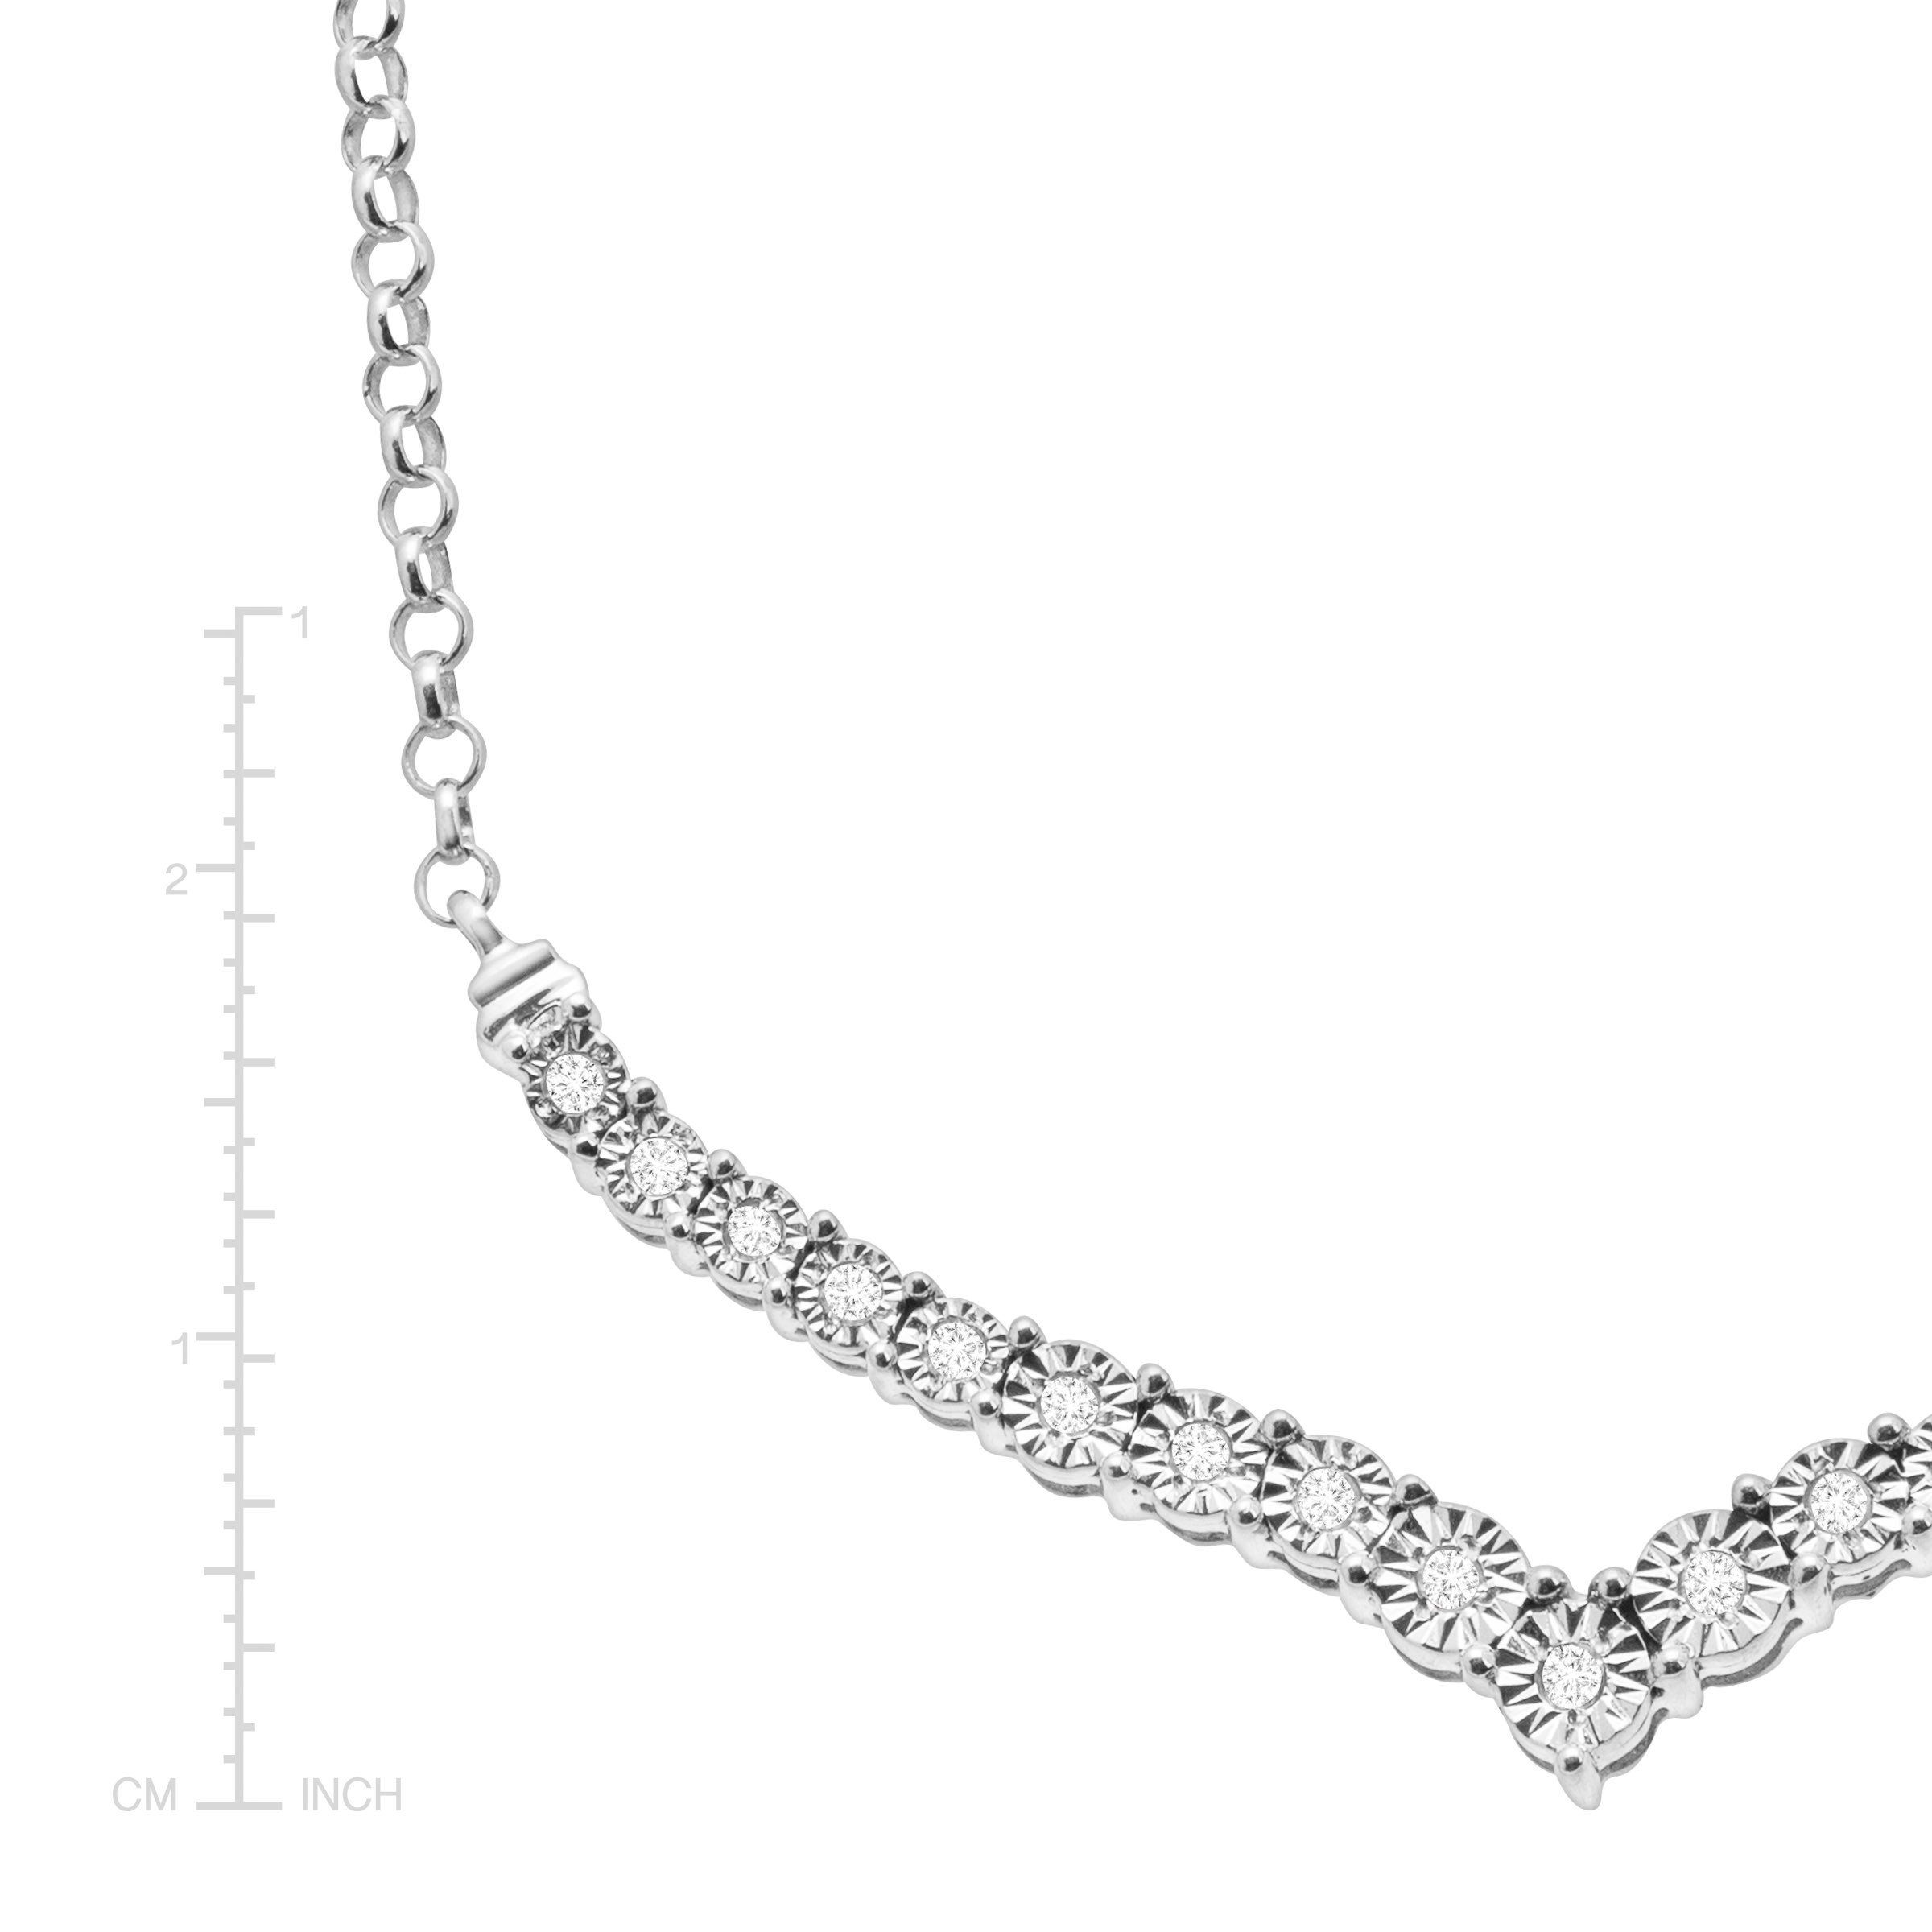 1/4 ct Diamond Chevron Necklace in Sterling Silver by Finecraft (Image #2)